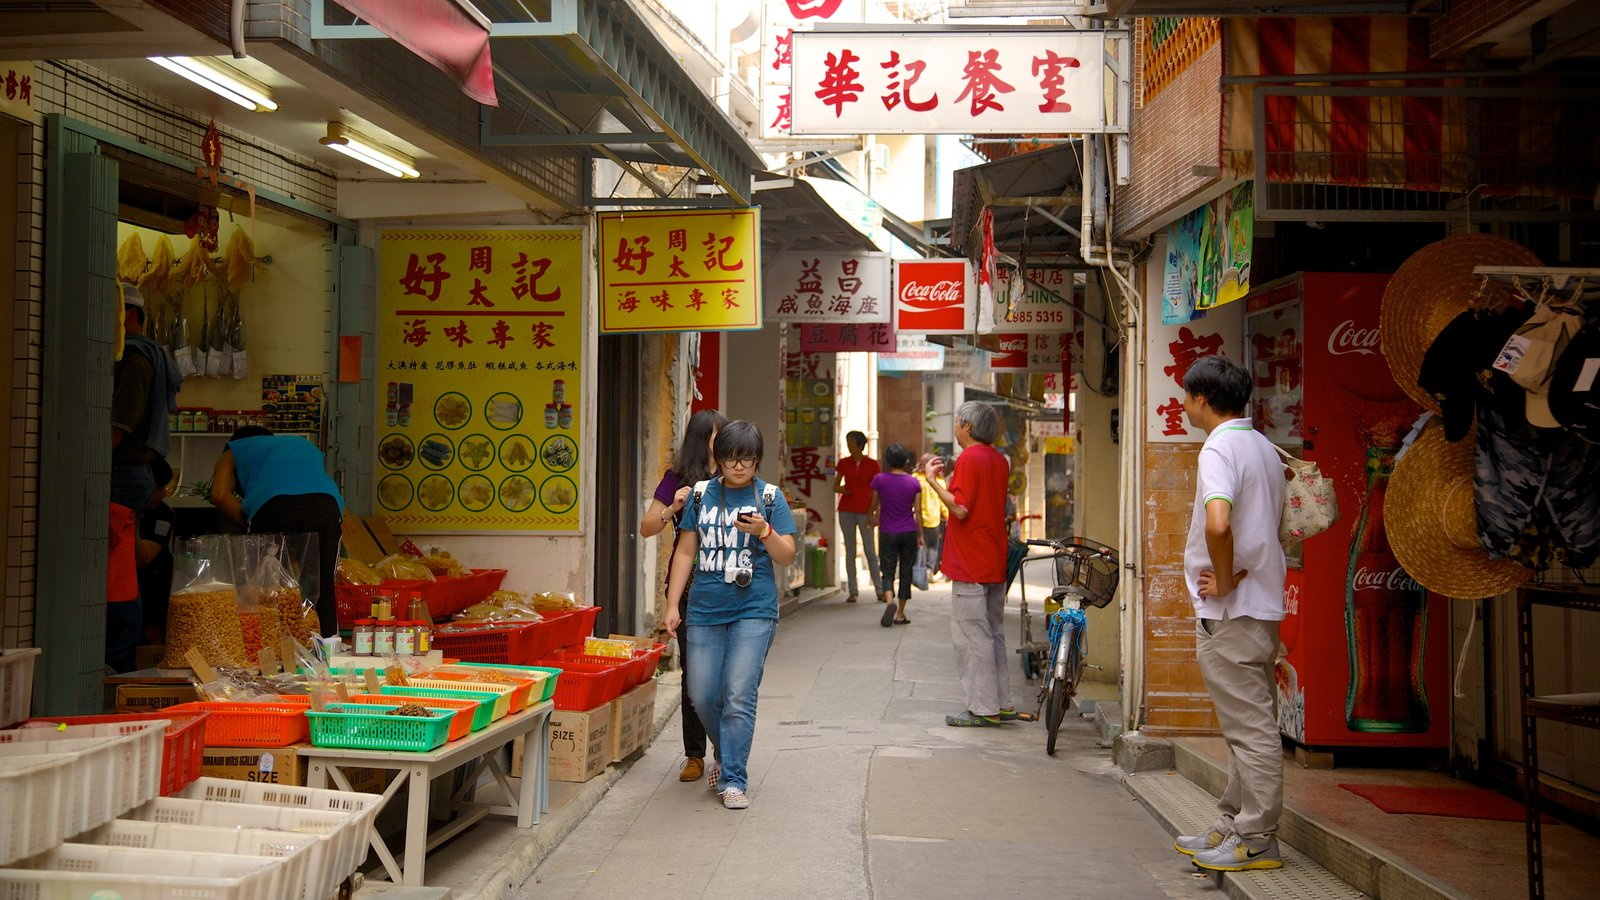 Tai O Fishing Village which includes signage, shopping and markets